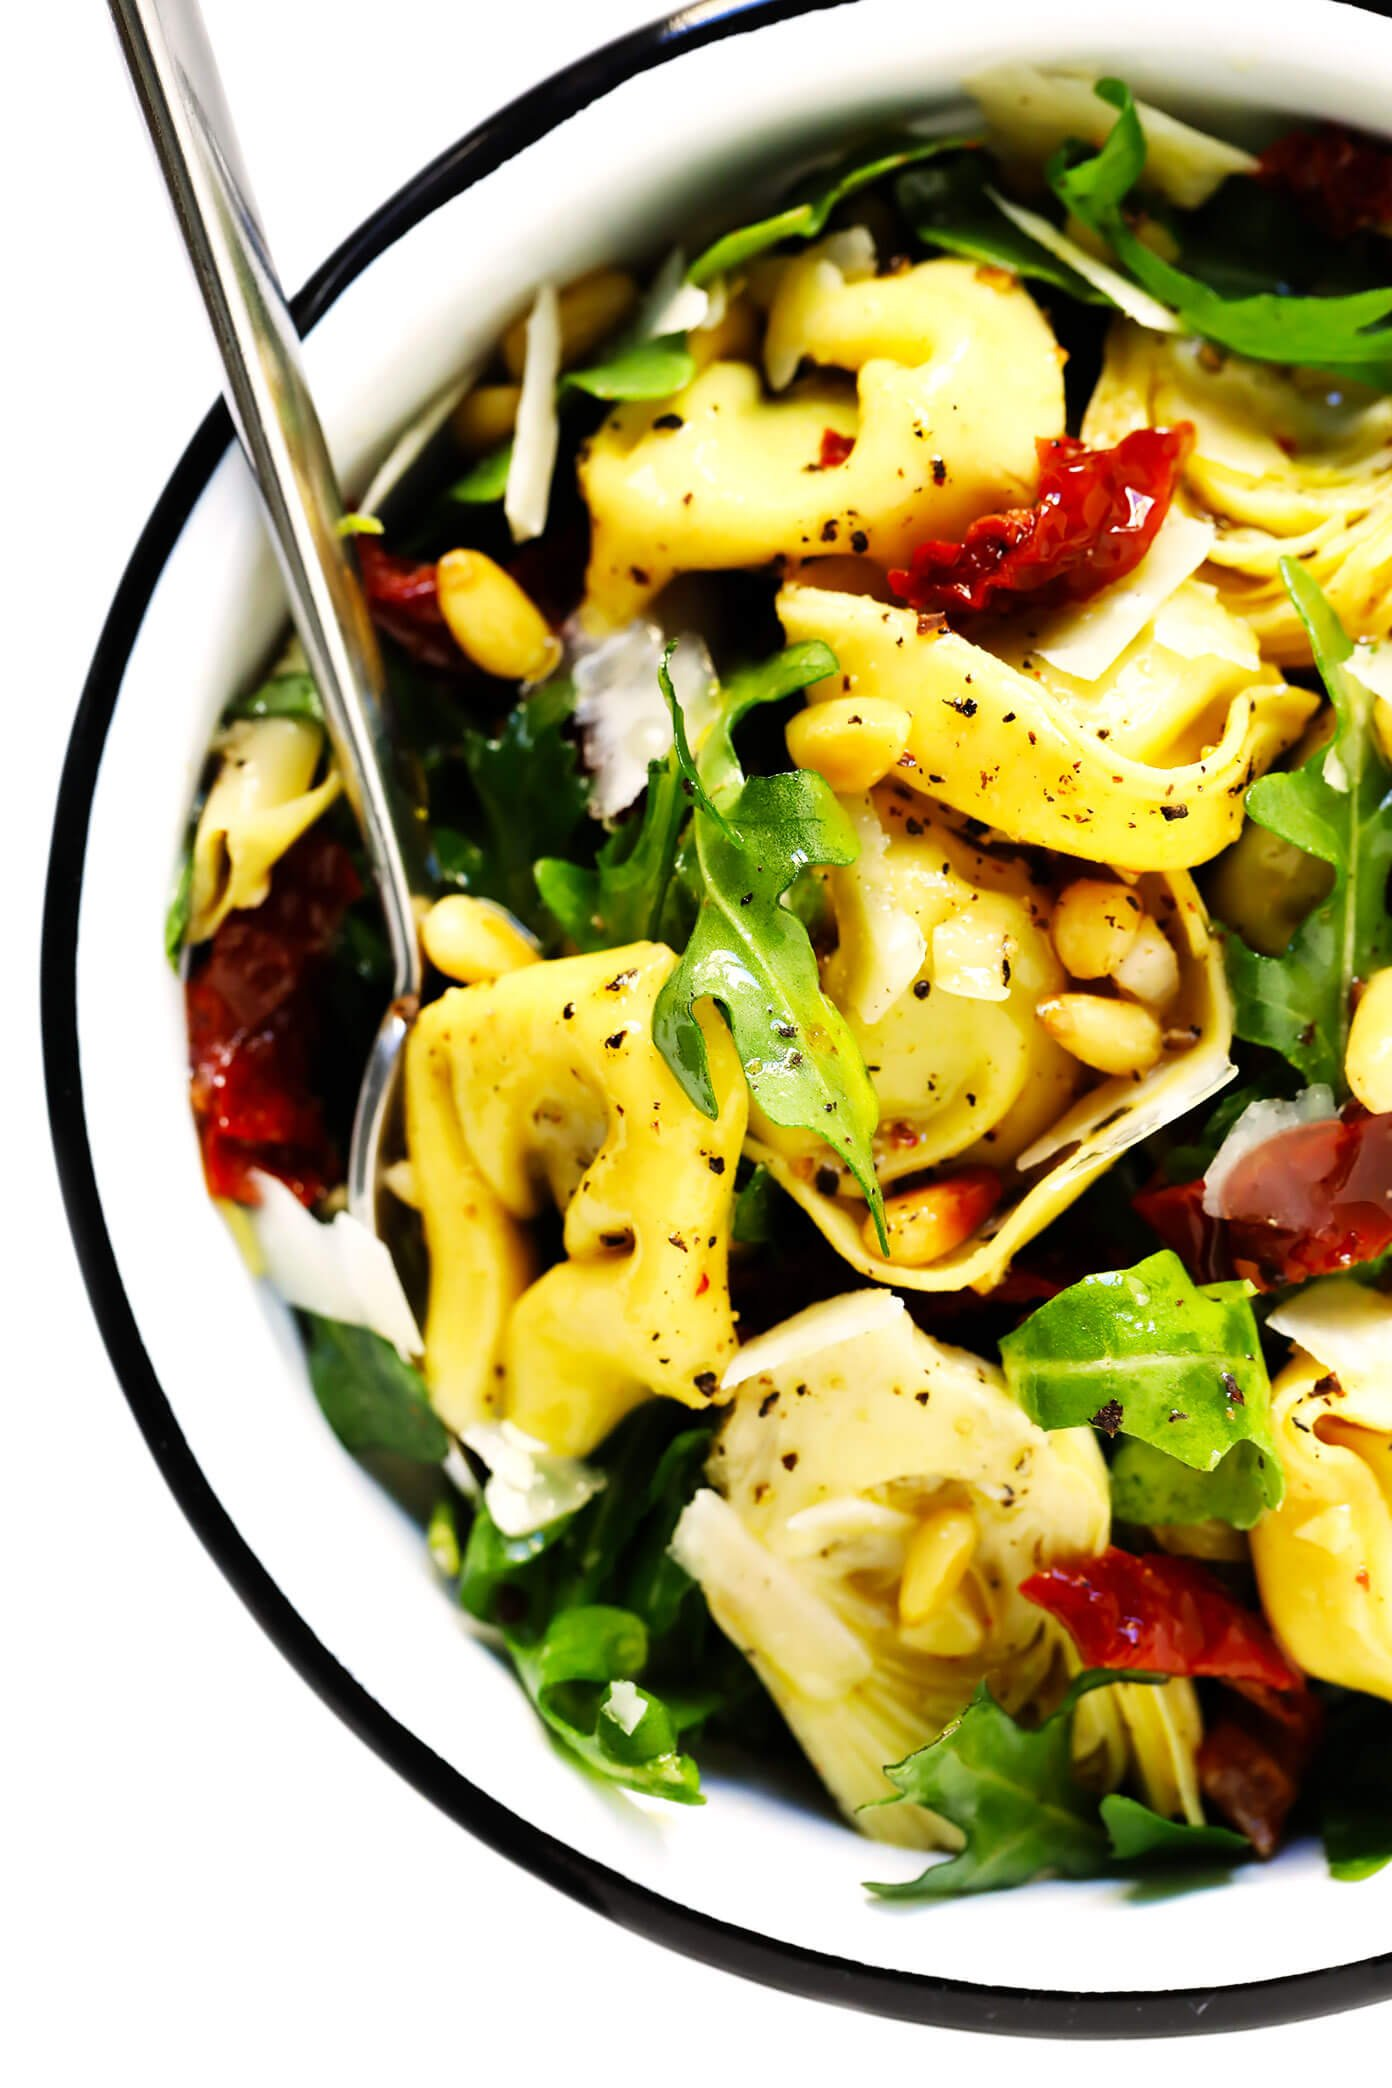 Tortellini Pasta Salad with Artichokes, Sun-Dried Tomatoes, Pine Nuts, Arugula and Parmesan